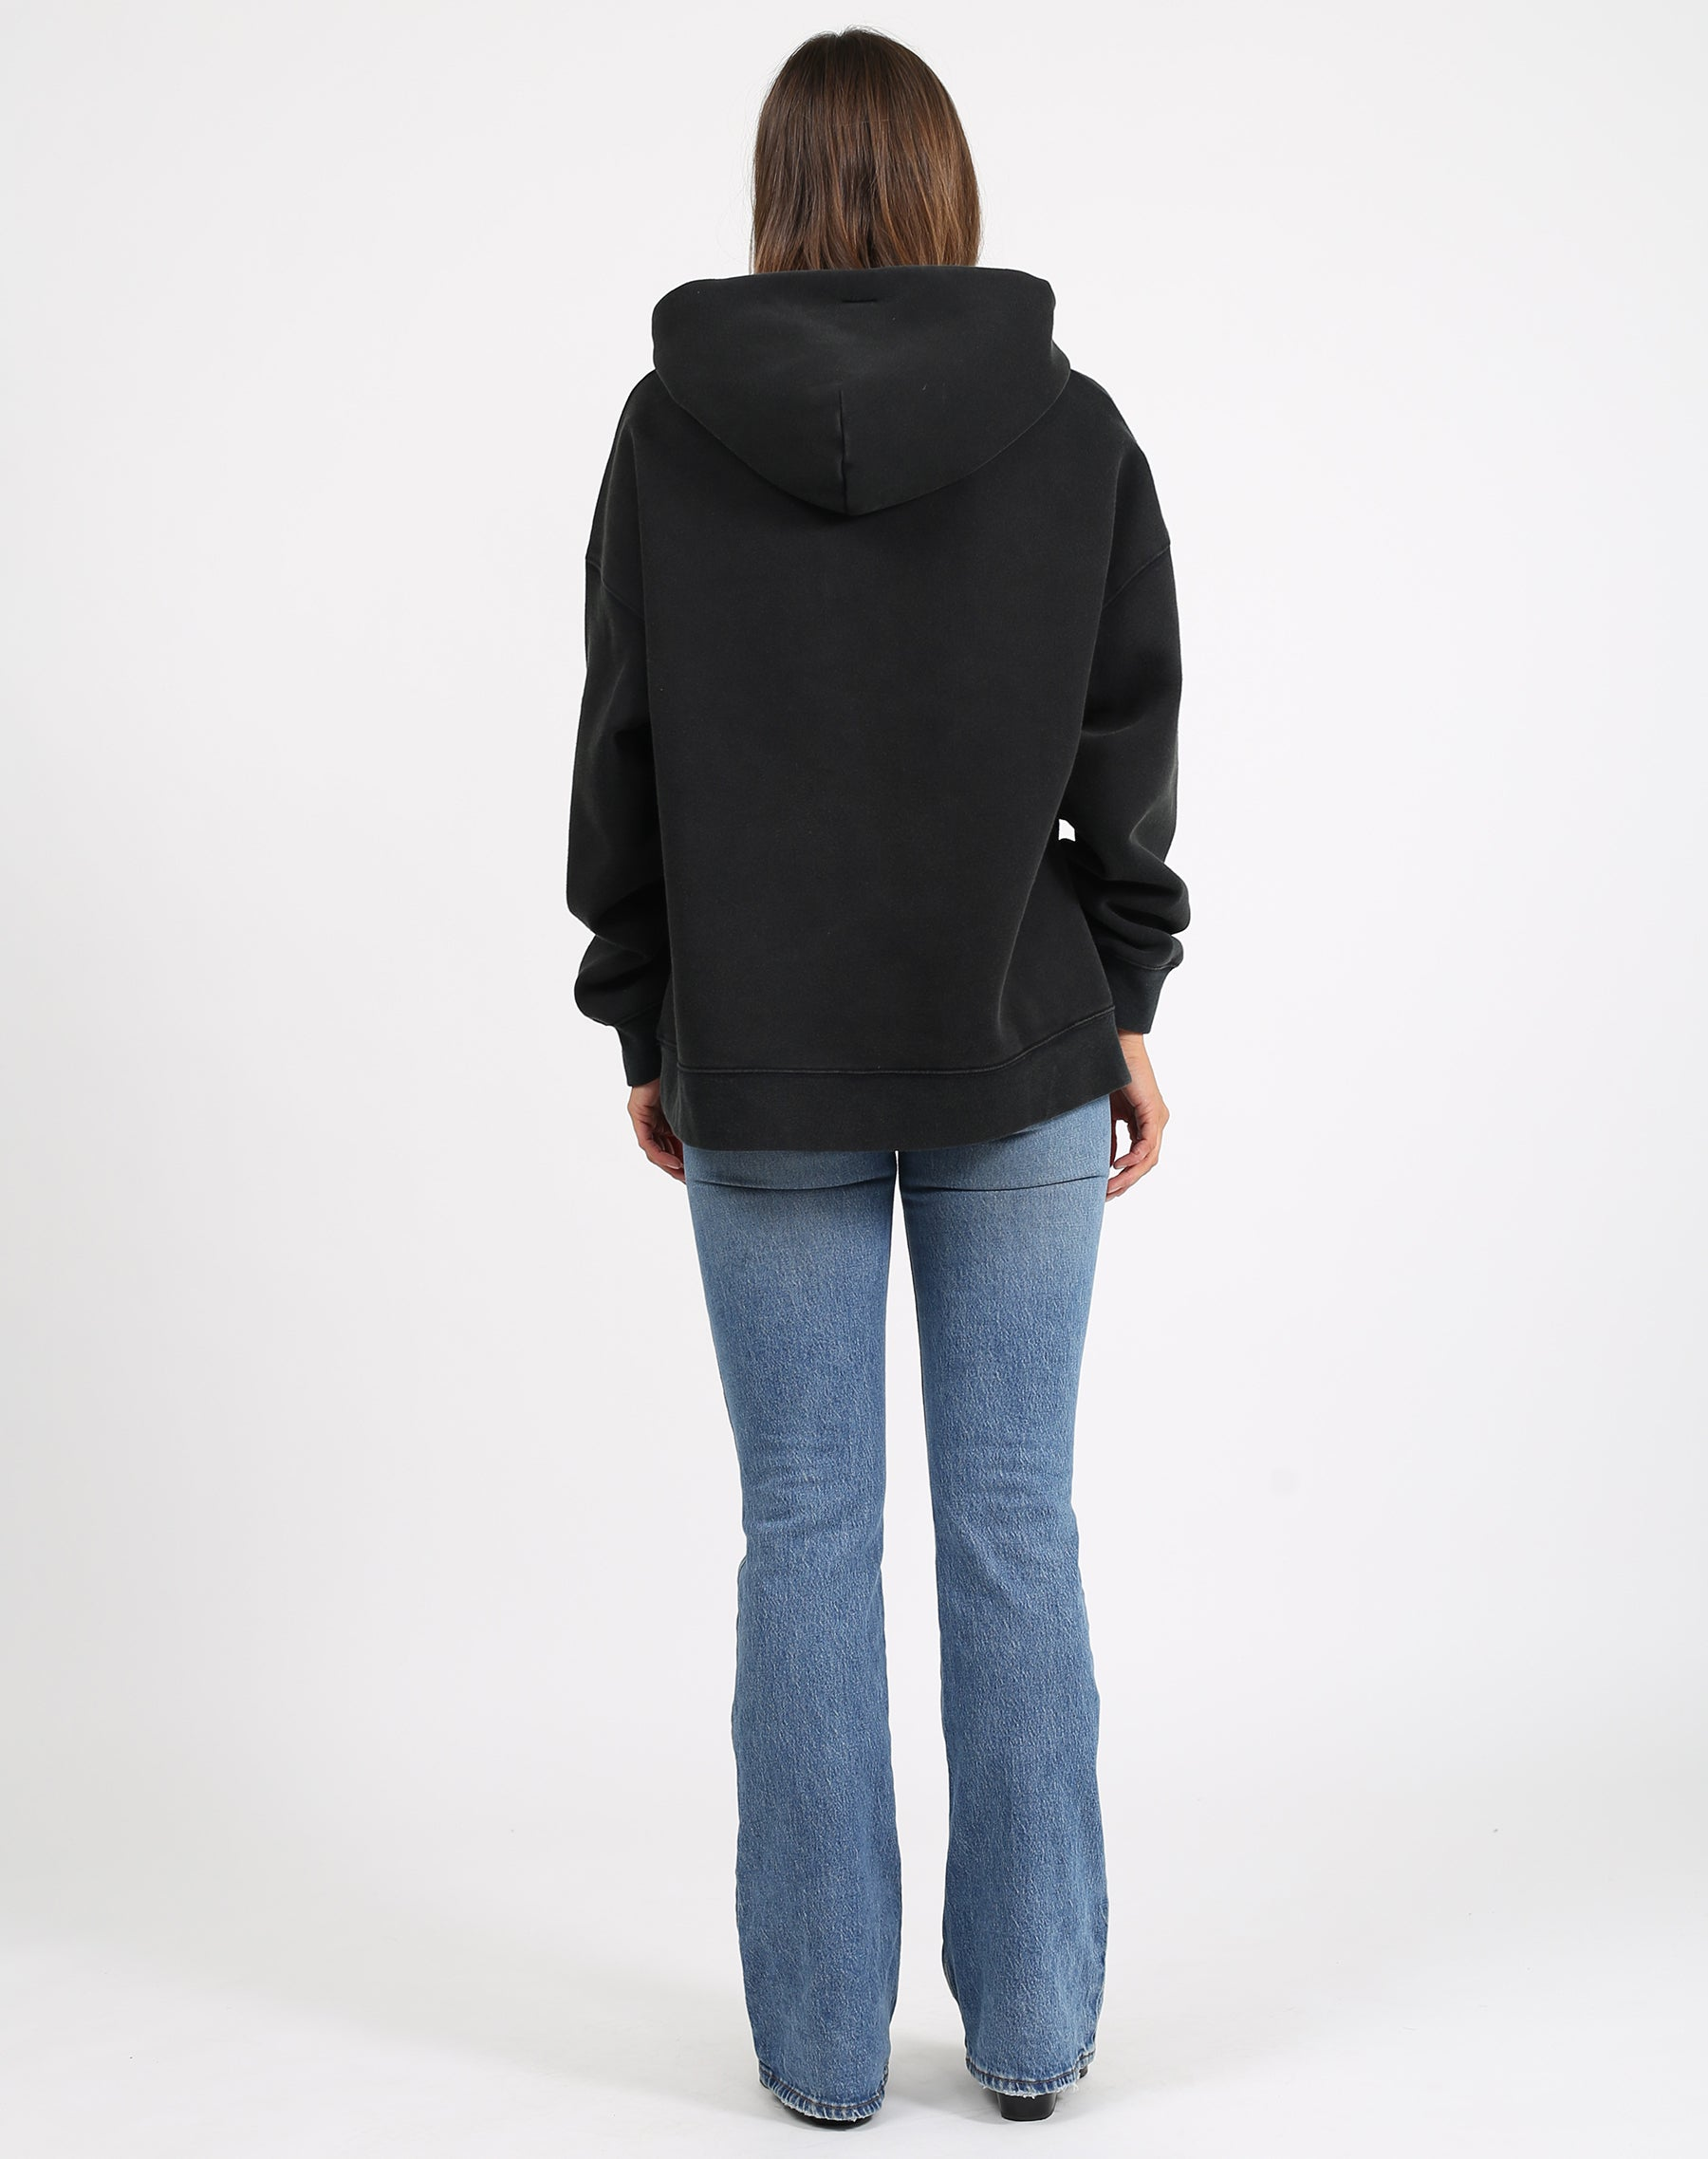 This is a photo of the back of a model wearing the babes club big sister hoodie in acid wash black by brunette the label.